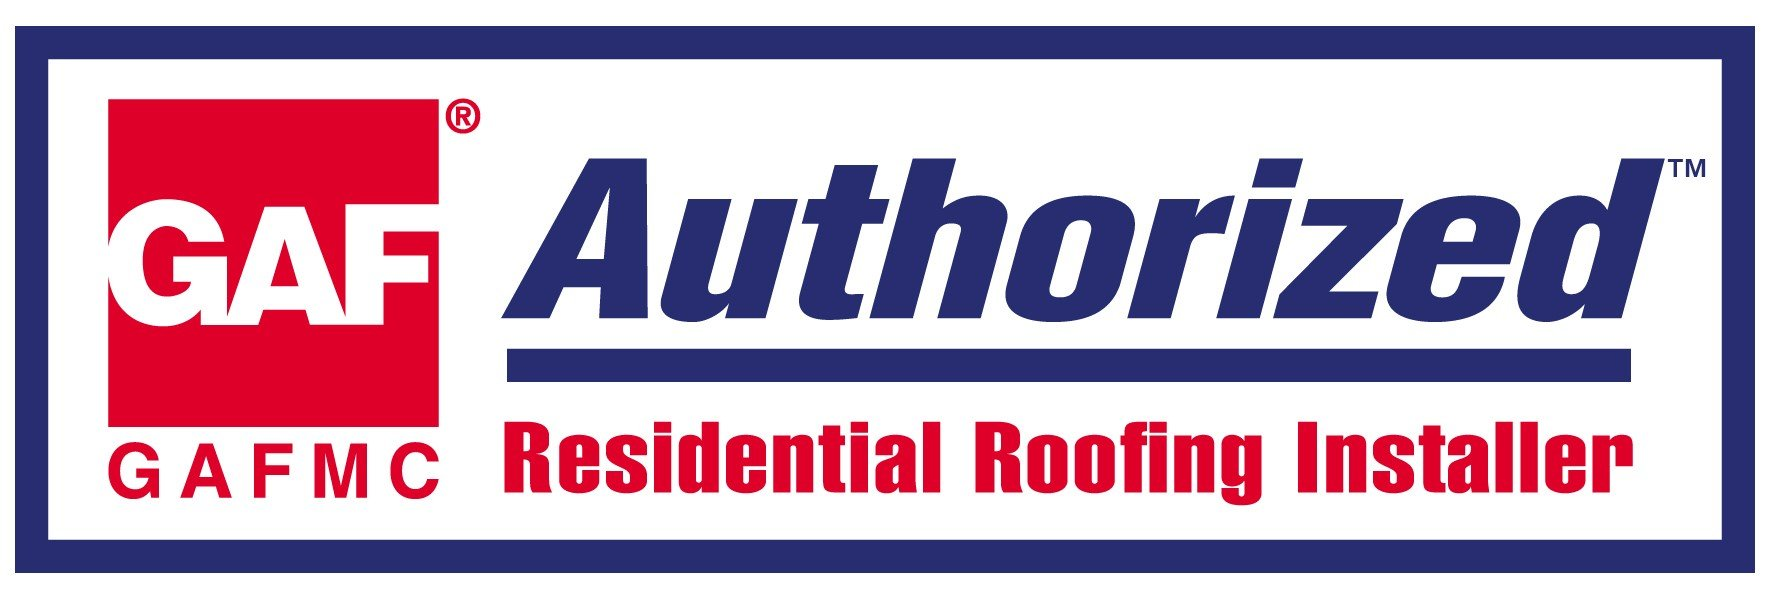 GAF Authorized Residential Roofing Installer - Logo